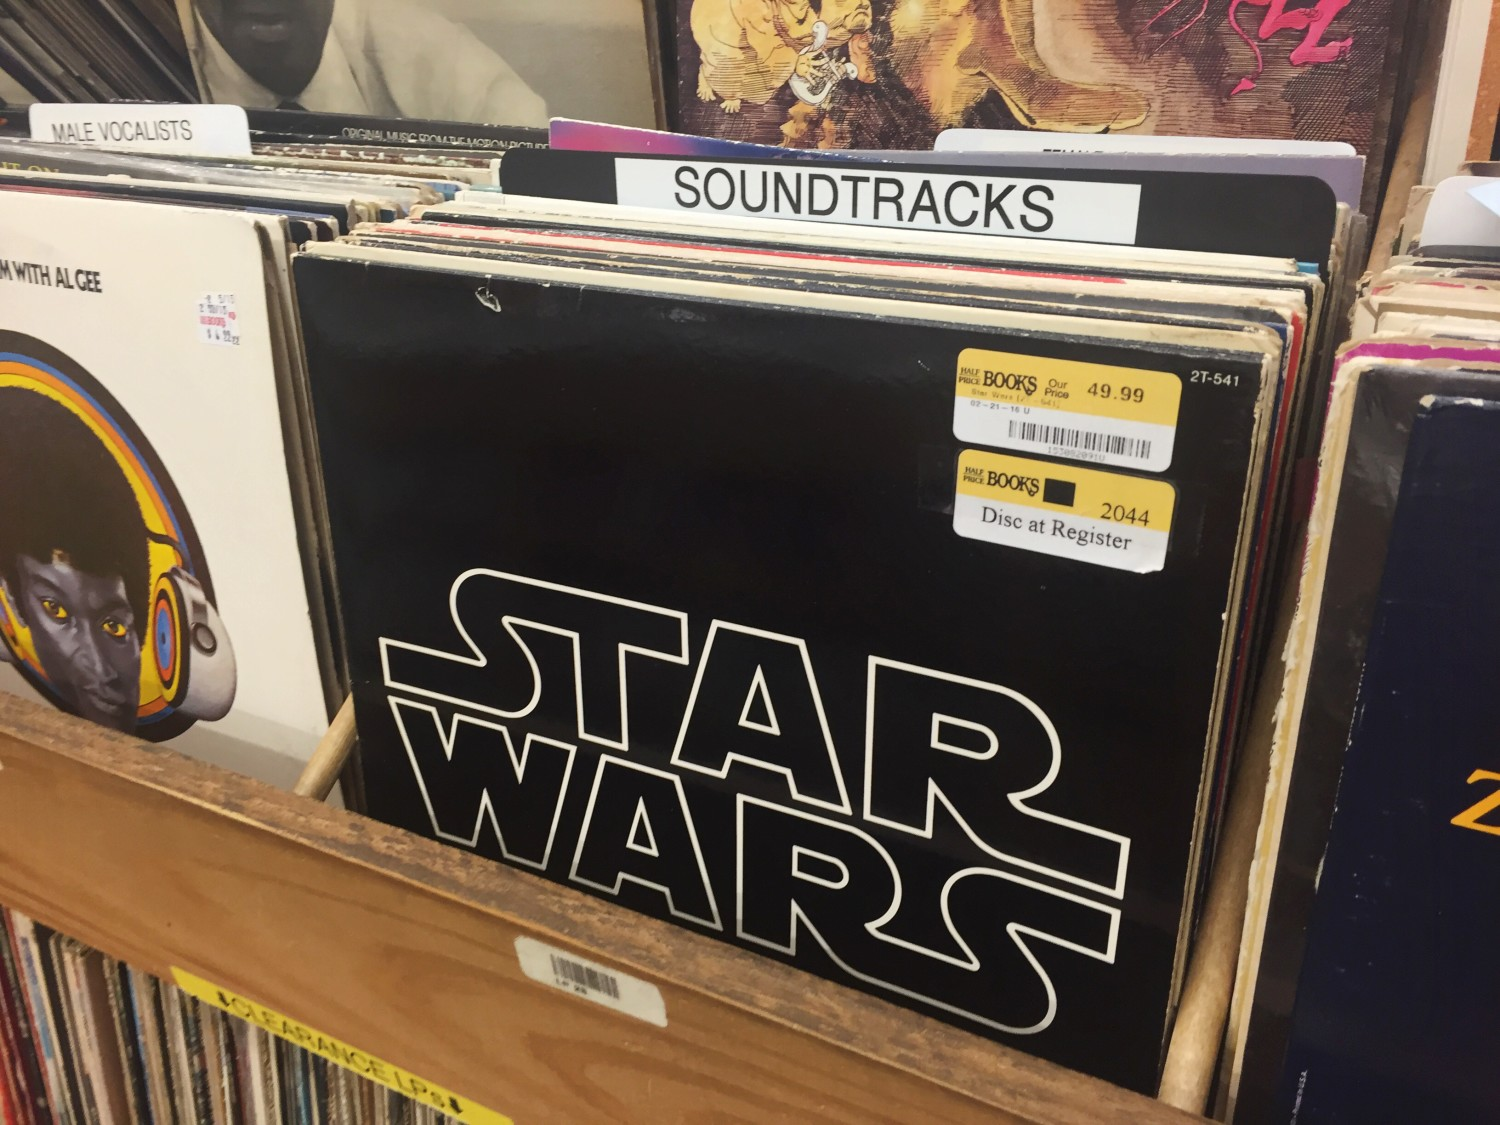 Stars Wars Soundtrack Vinyl